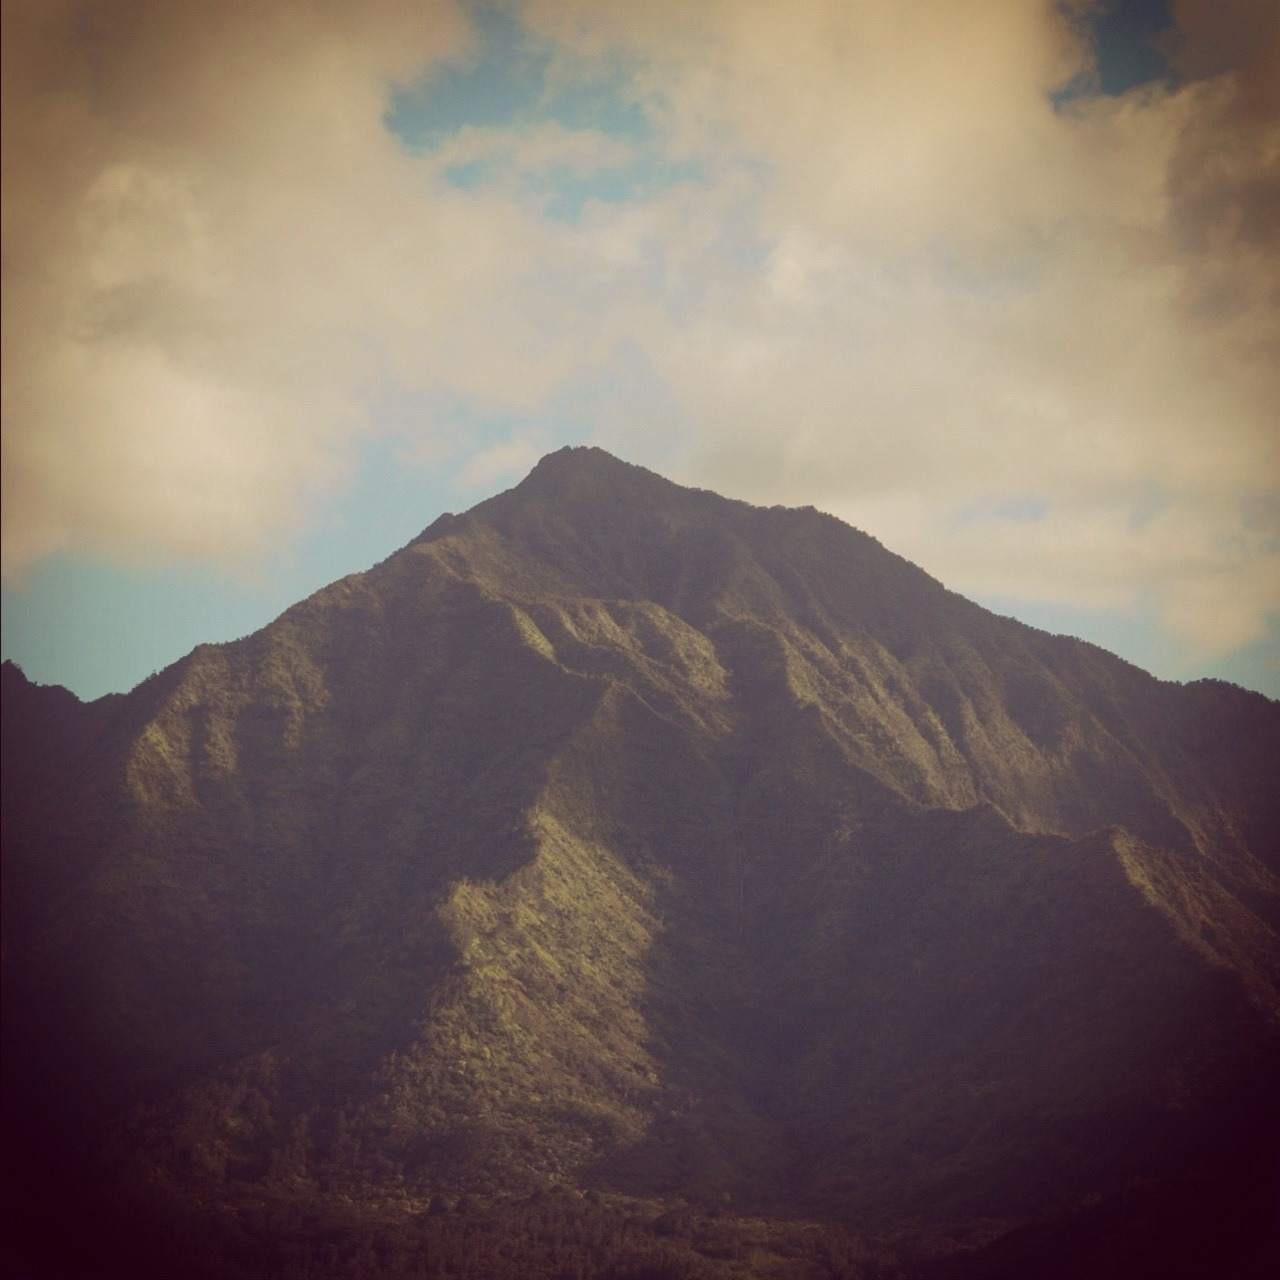 This is Nael Nacer. Well, this is a Mountain. But I feel like this sometimes, so maybe I am a Mountain. This photo is the work of Nael Nacer. He makes beautiful things more beautiful.